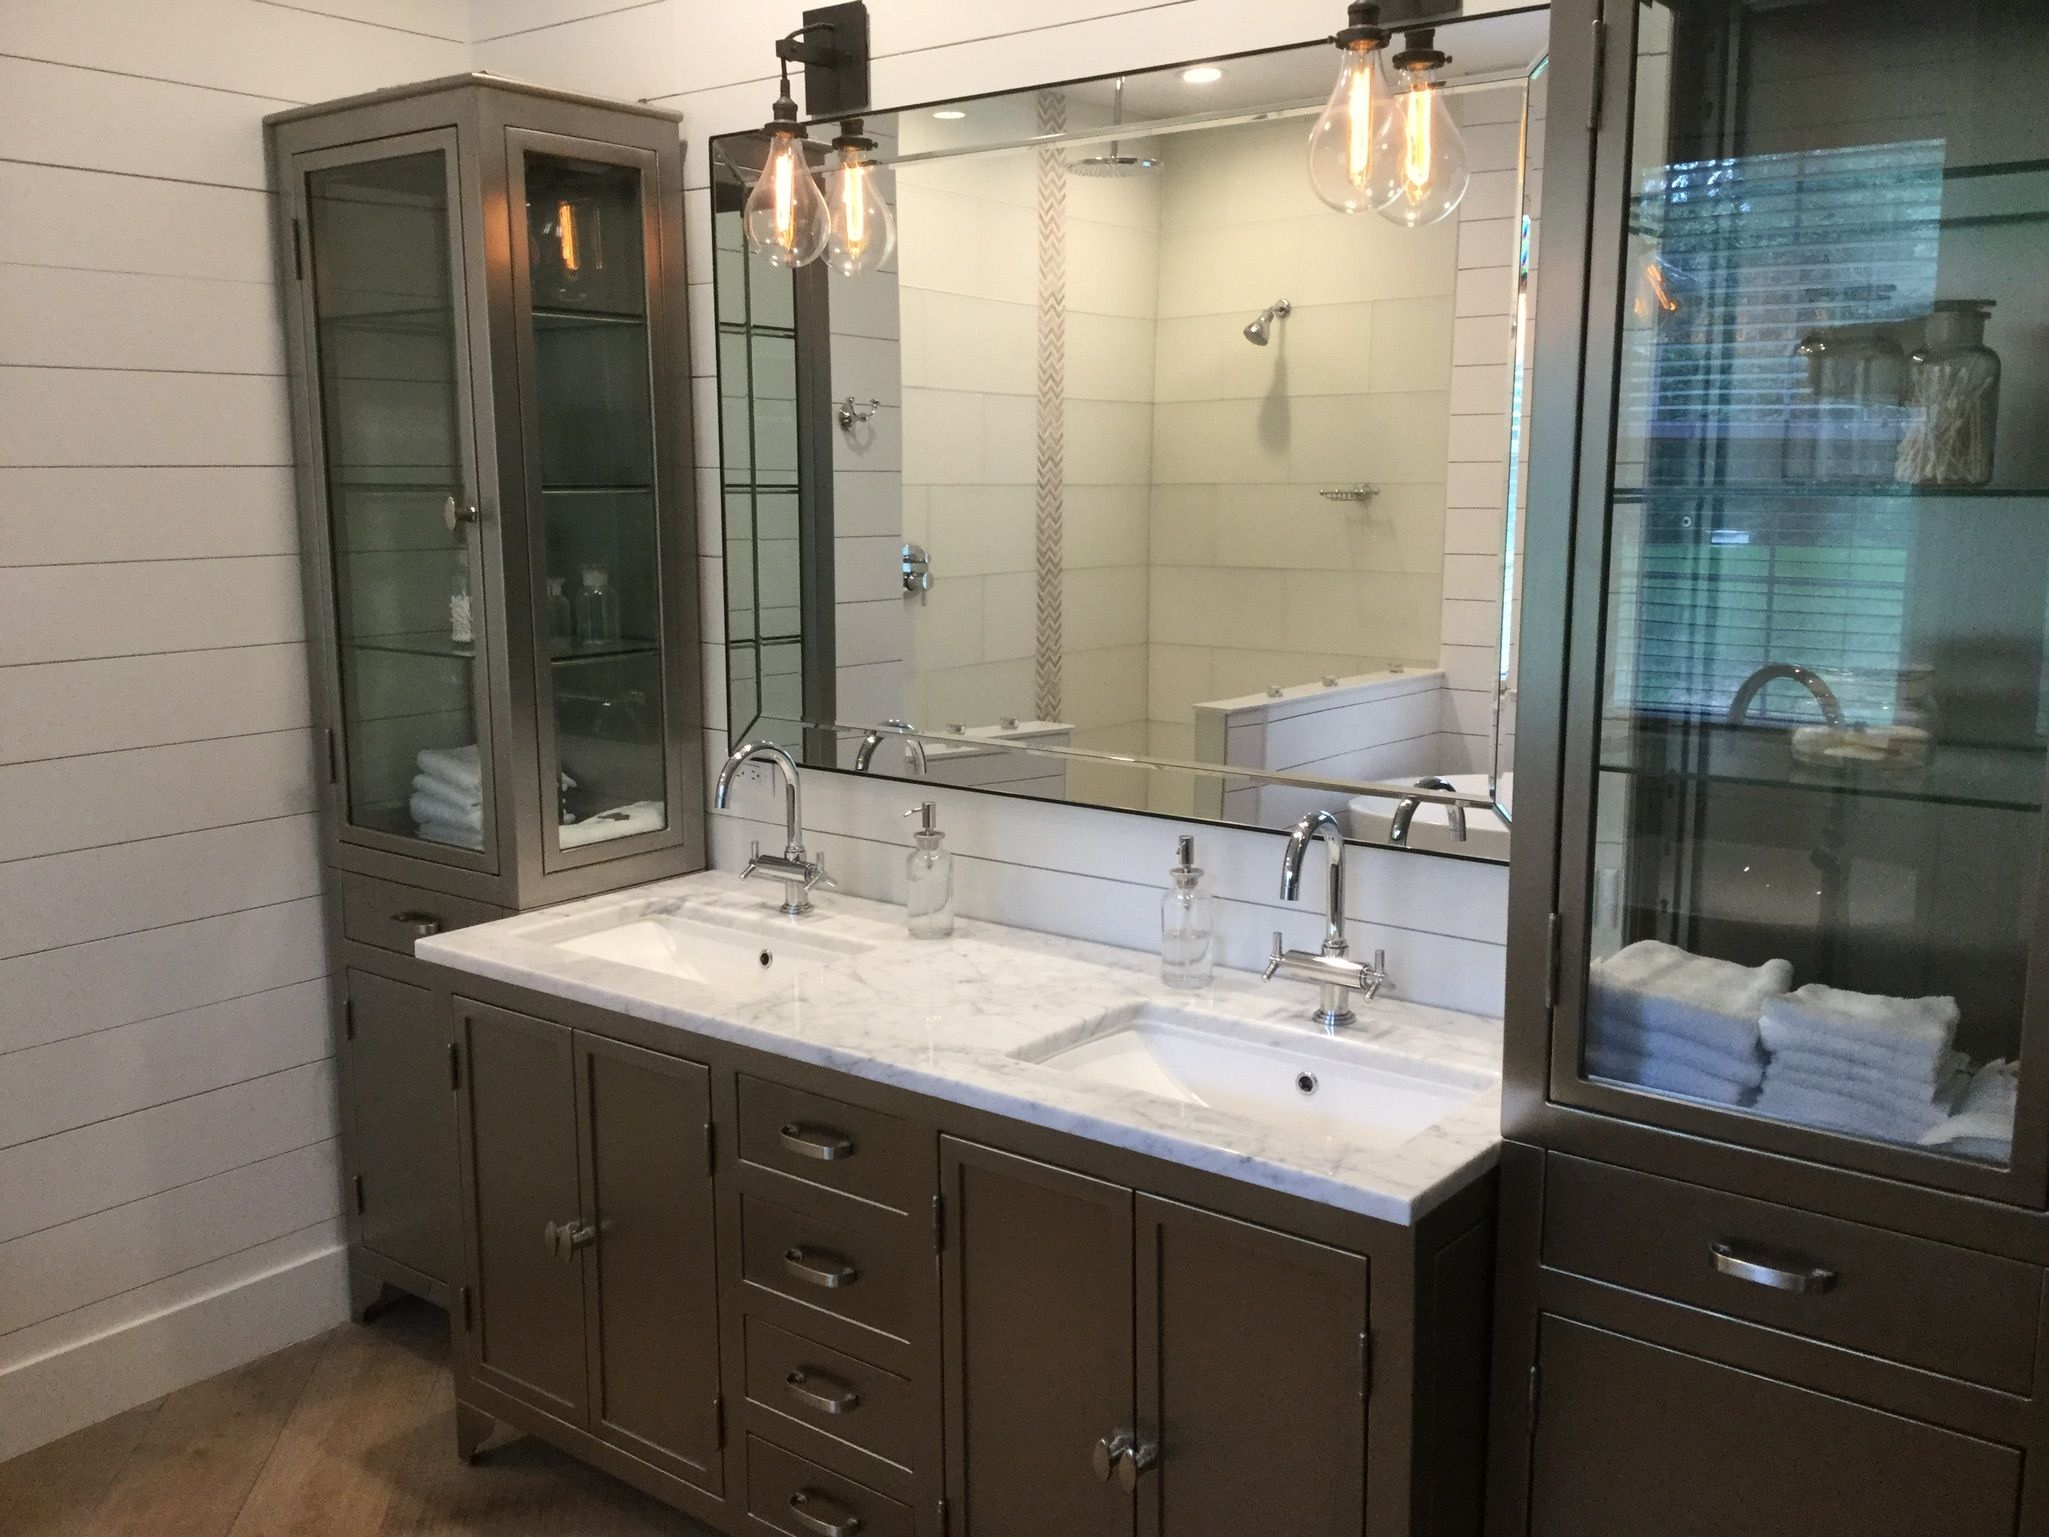 Bathroom Remodel Tampa Bay Florida | Bathrooms remodel ...